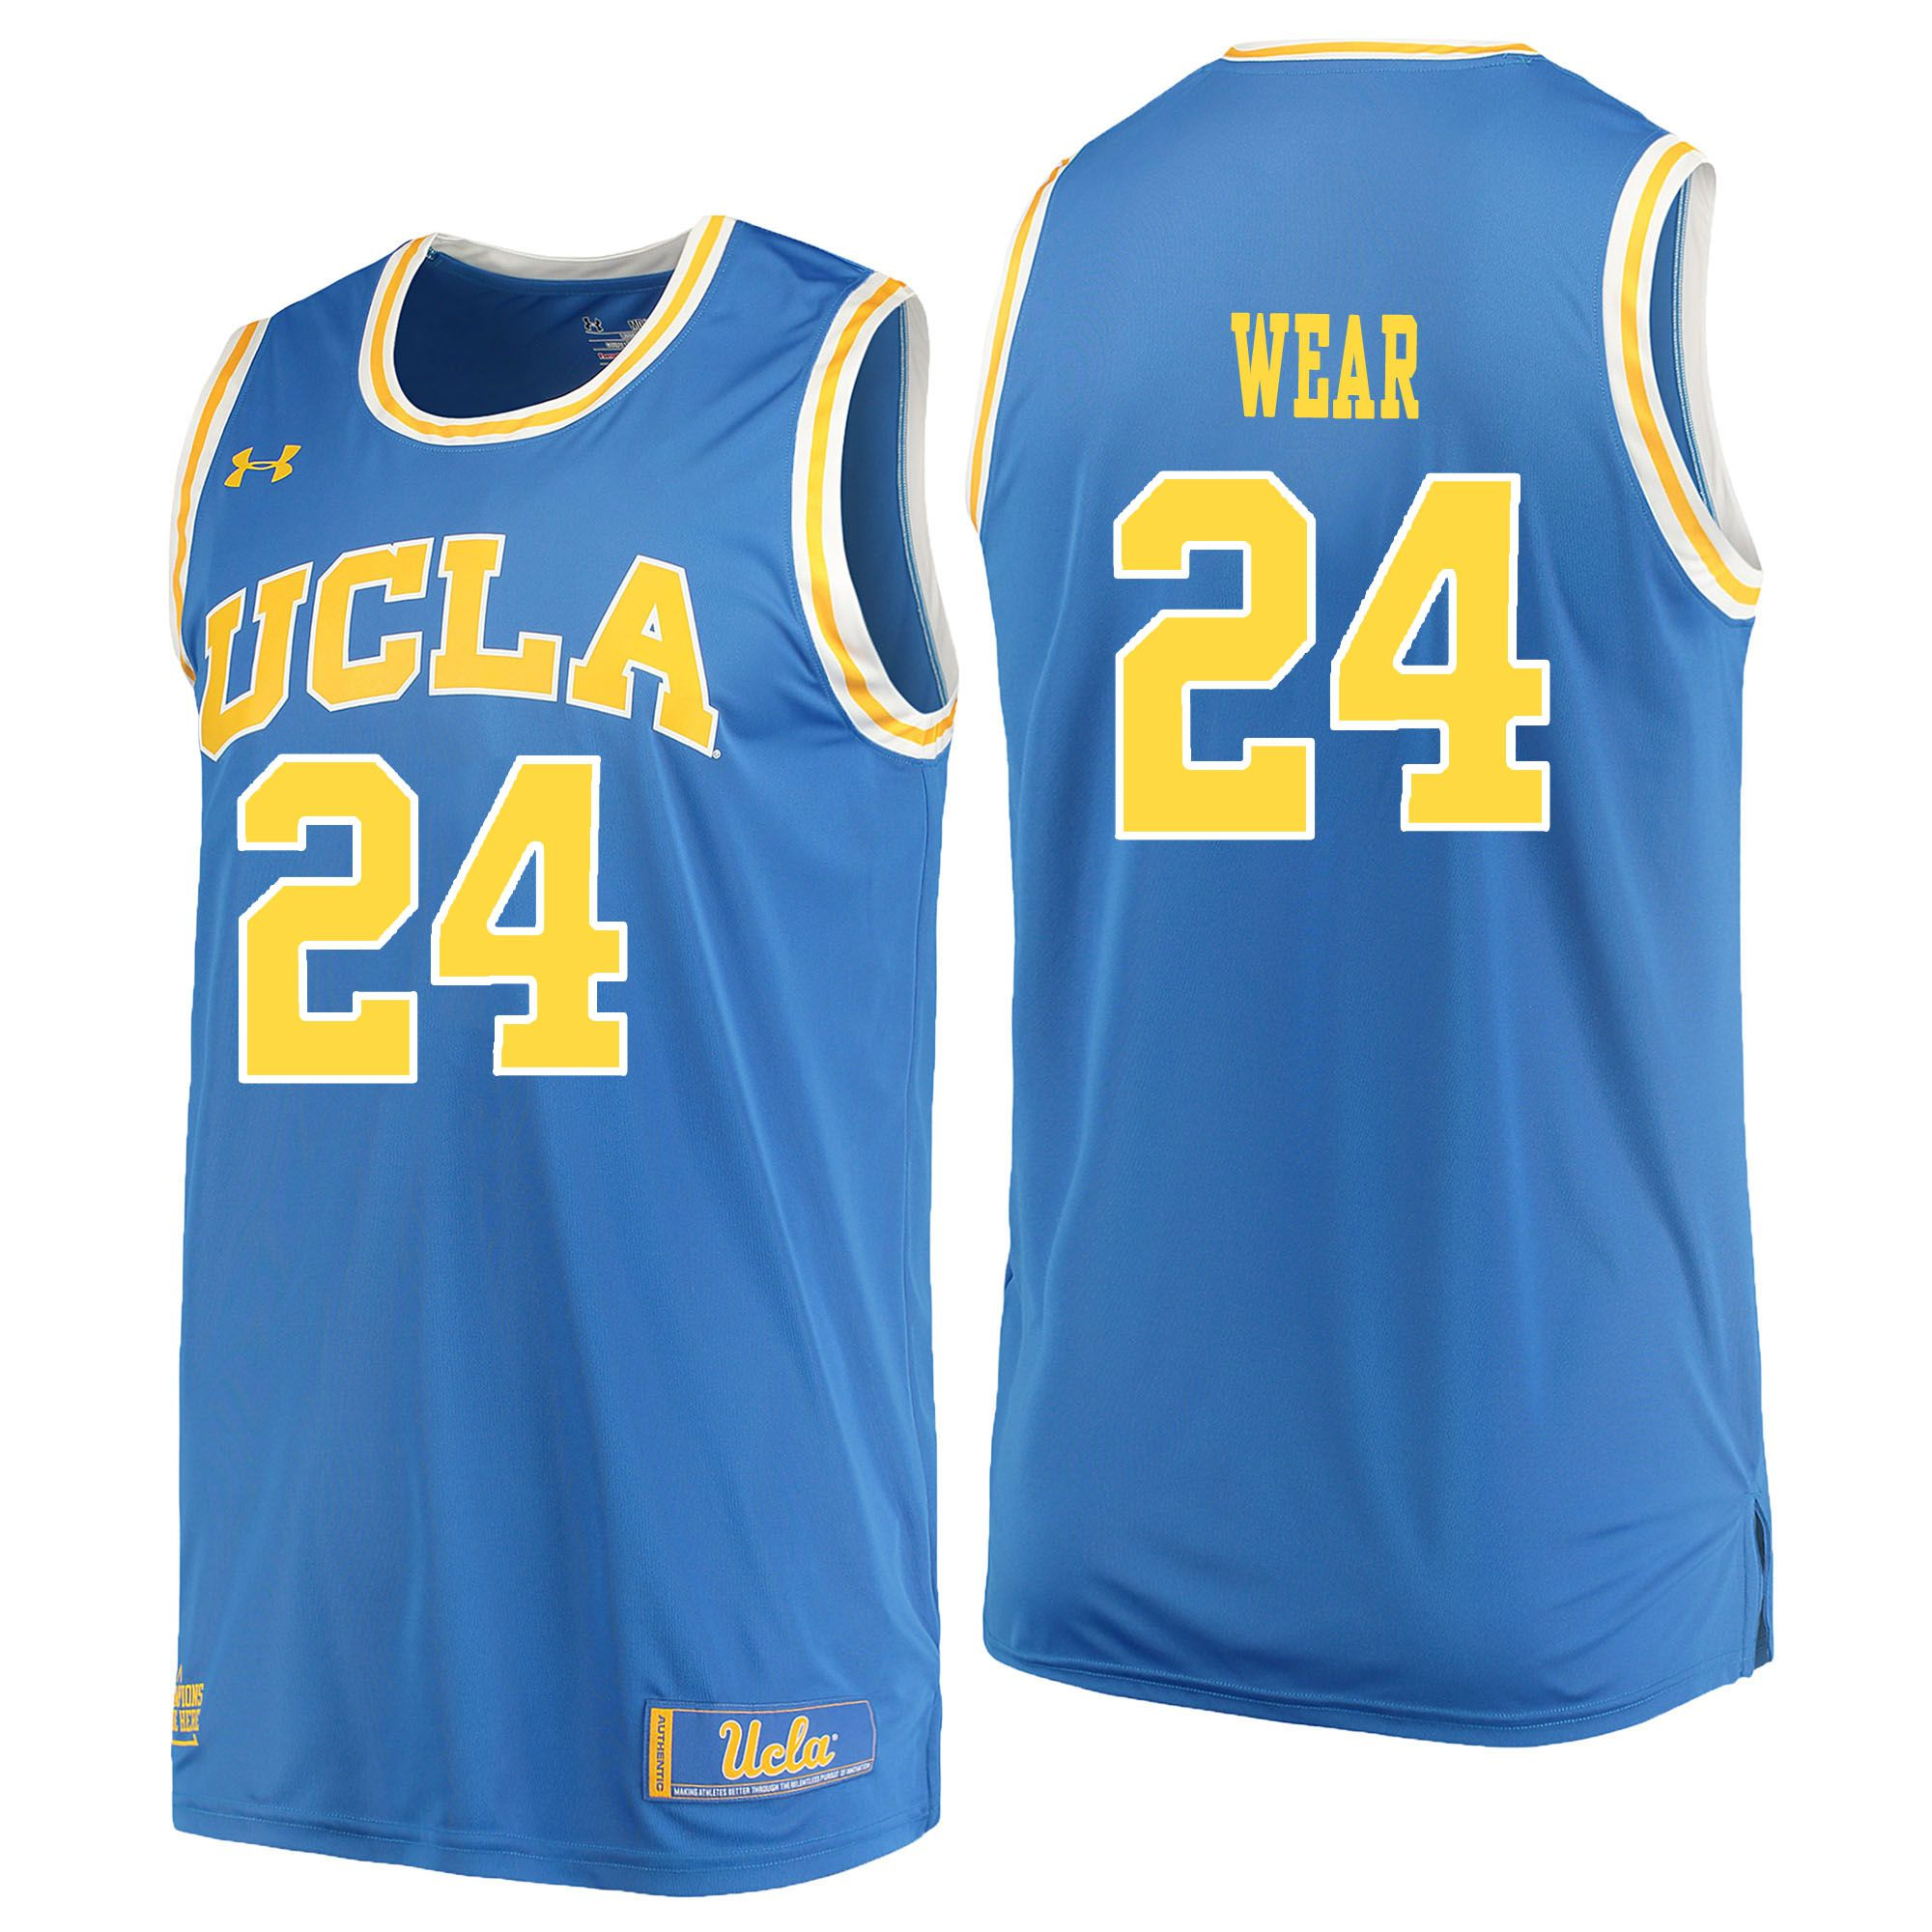 Men UCLA UA 24 Wear Light Blue Customized NCAA Jerseys